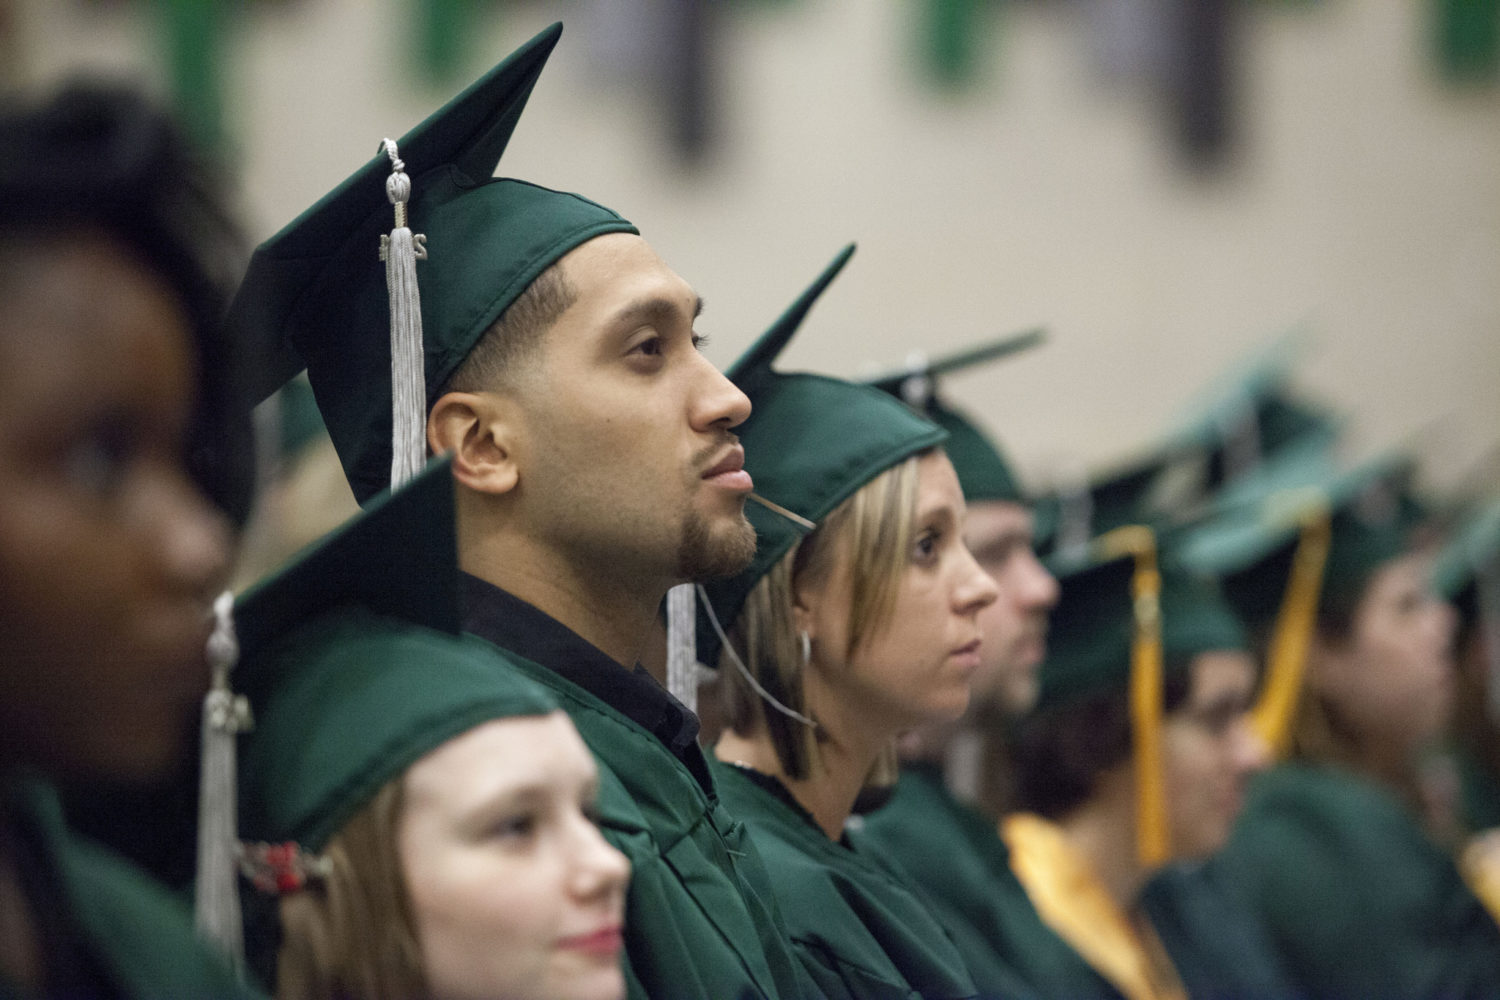 Research Highlights Need for Higher Ed IT to Improve Diversity, Equity, and Inclusion